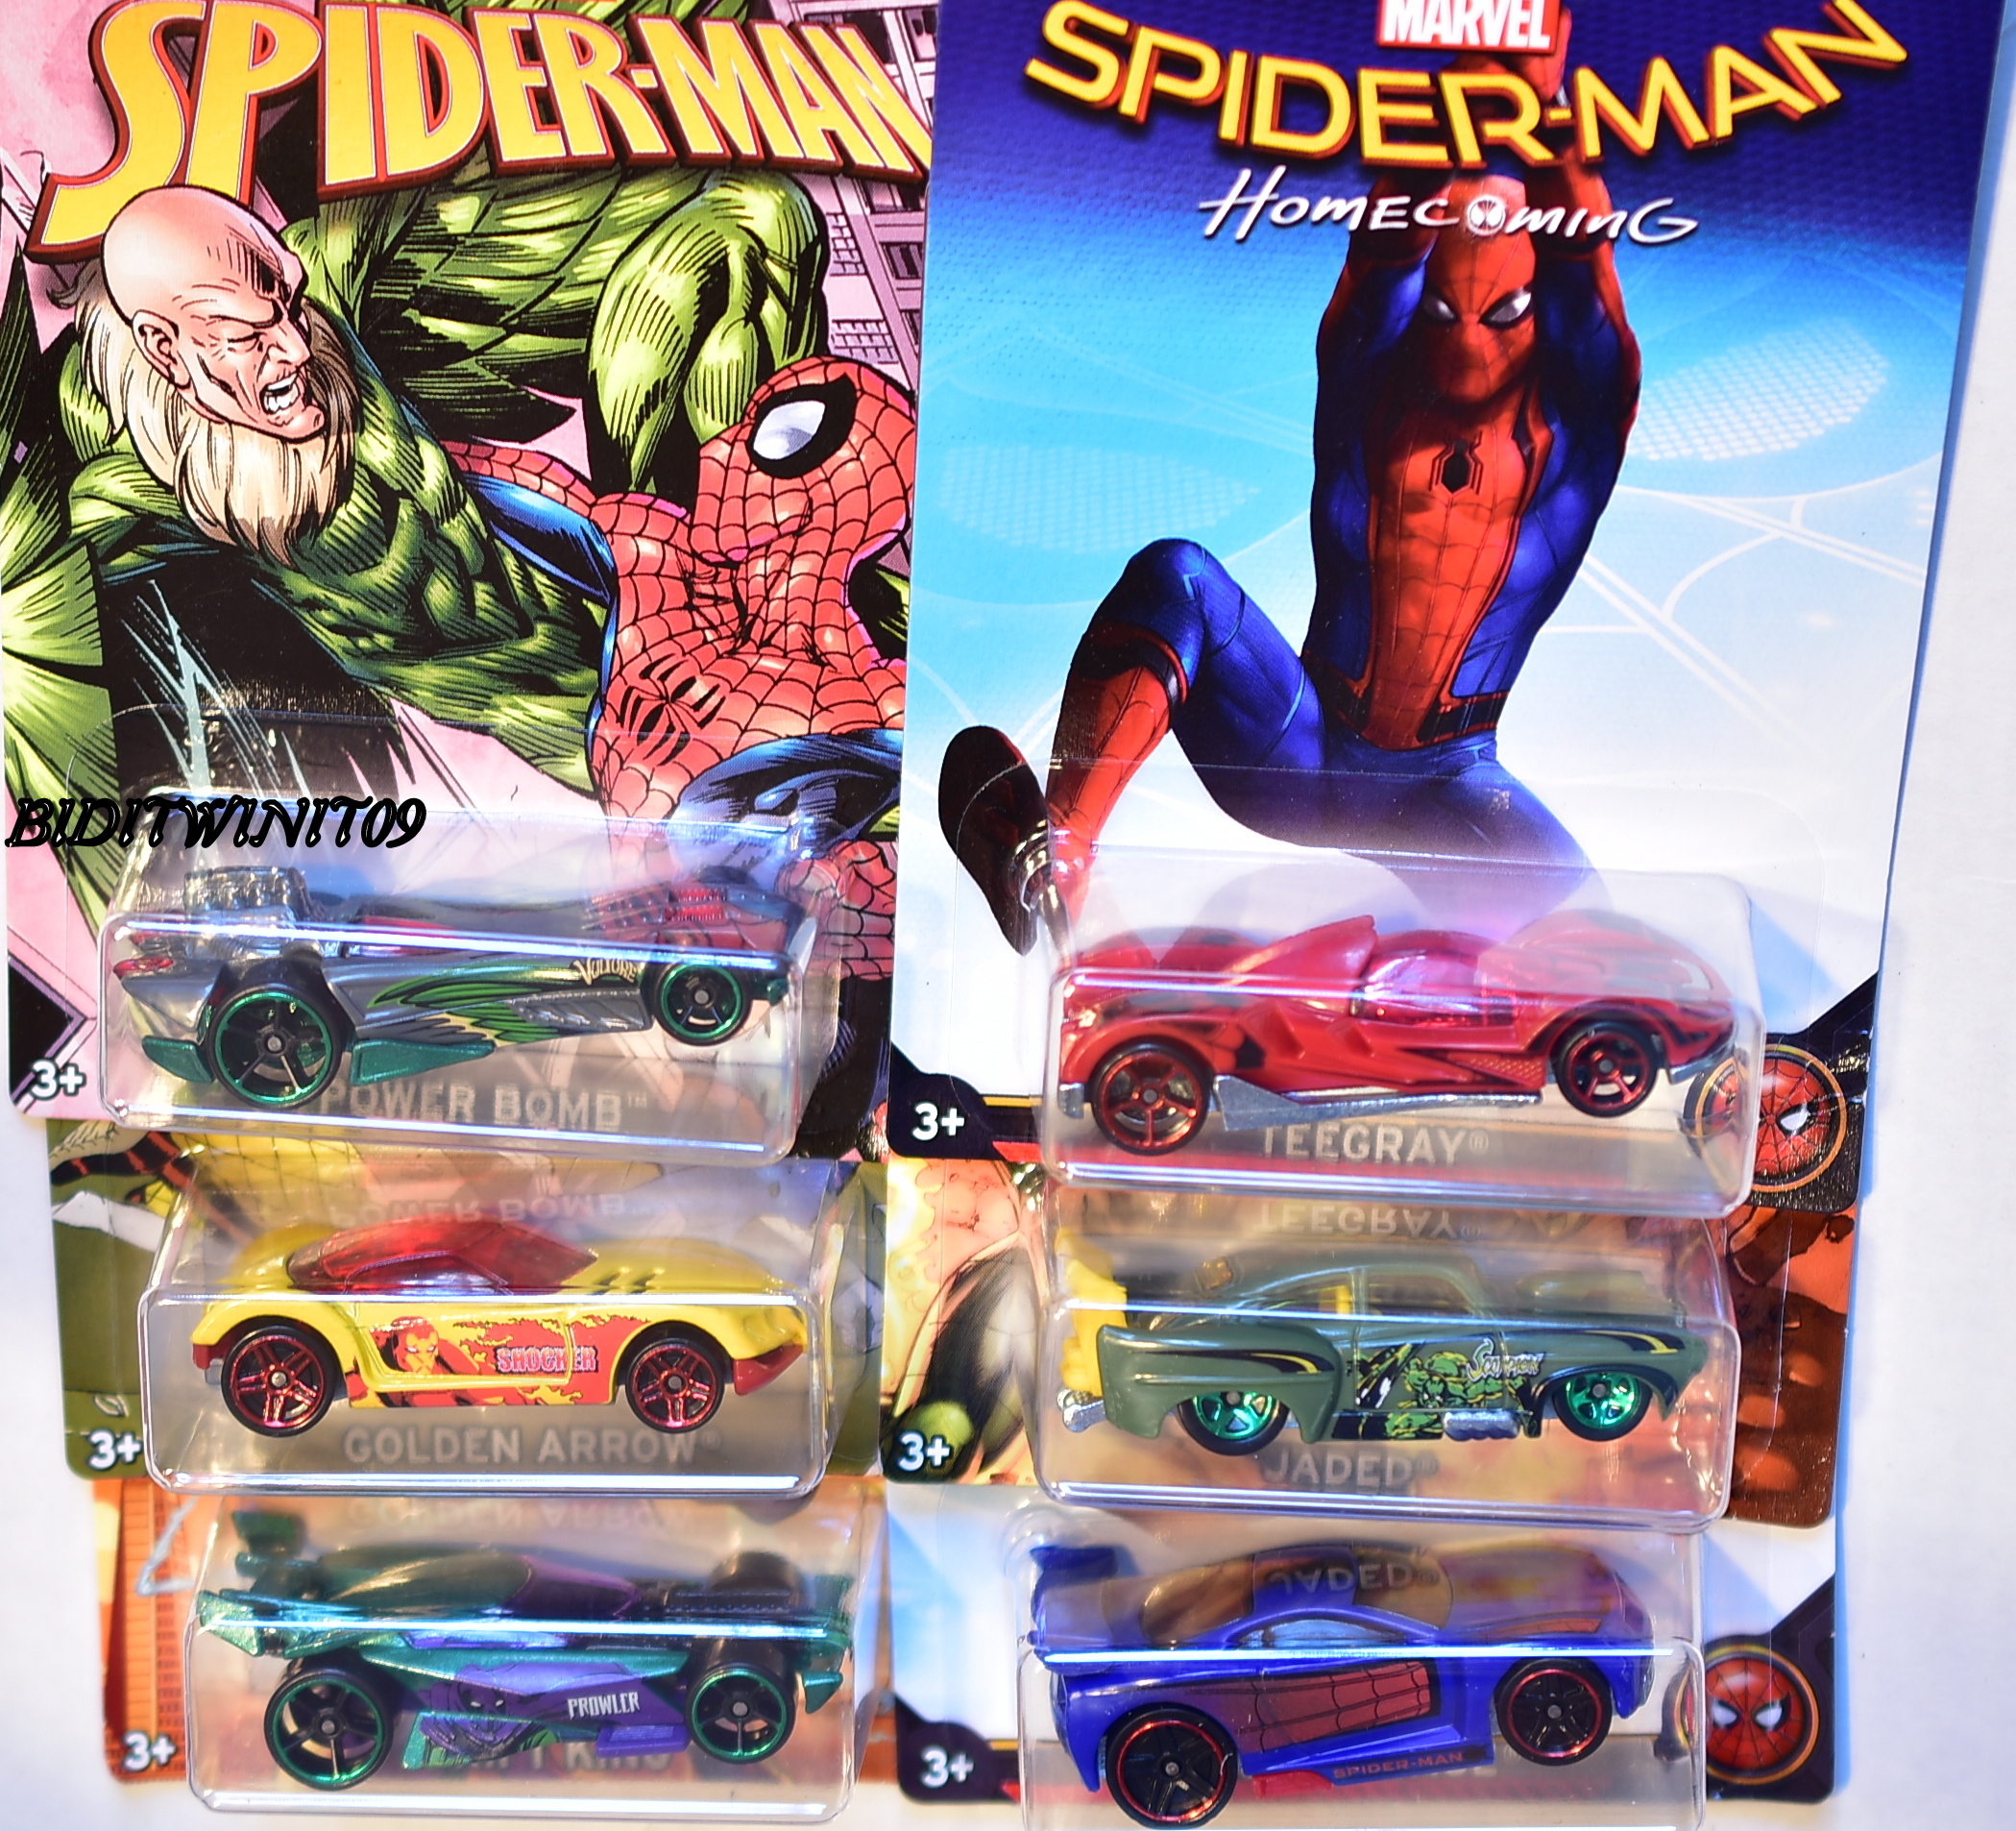 HOT WHEELS MARVEL SPIDER-MAN 2017 SET OF 6 JADED DRIFT KING POWER BOMB E+